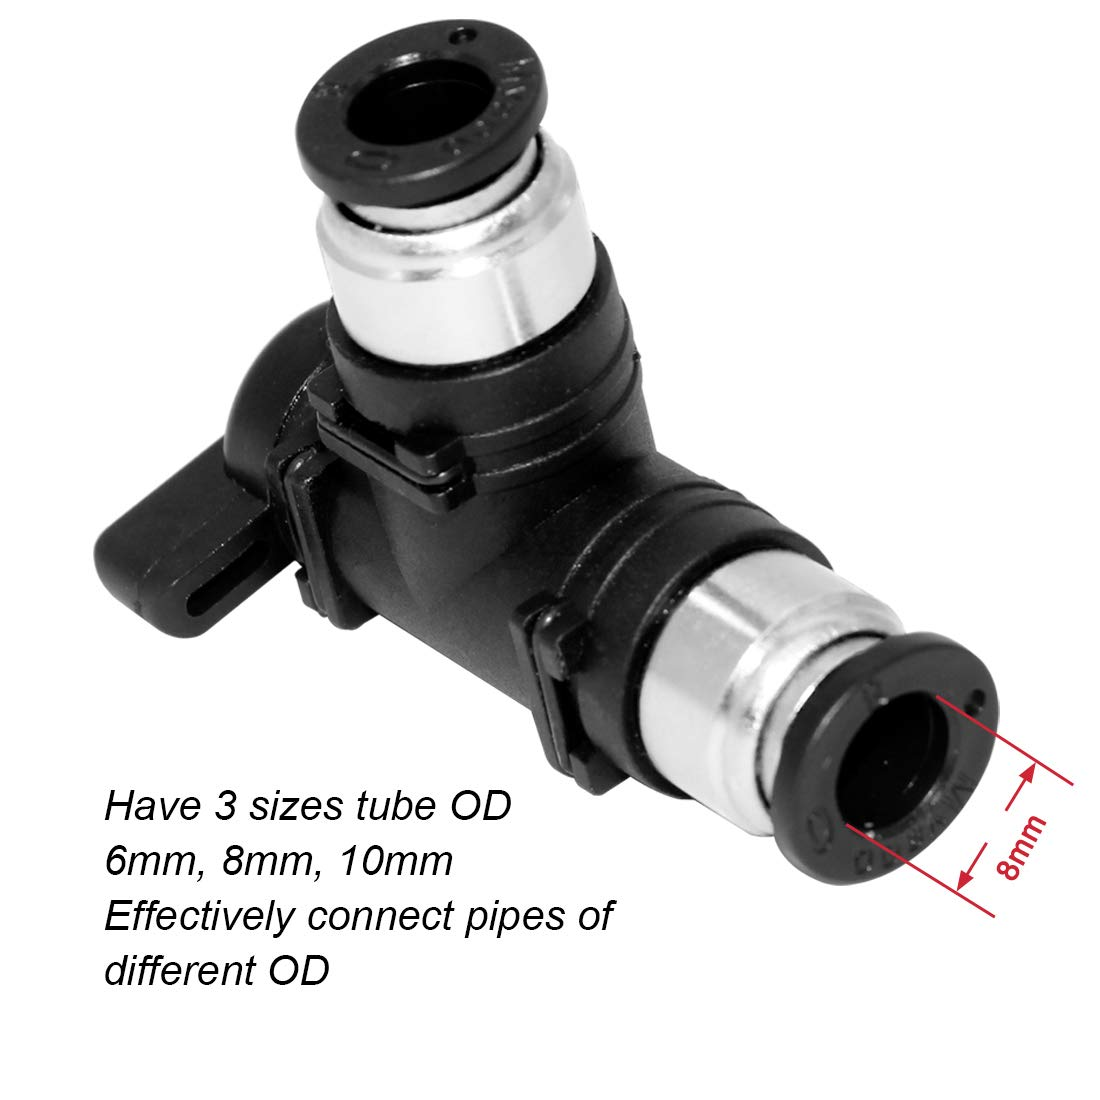 Beduan Push to Connect Fitting BUL Ball Valve Elbow Pneumatic Air Flow Control Valve Union Adapter Fitting 10mm x 10mm Tube OD